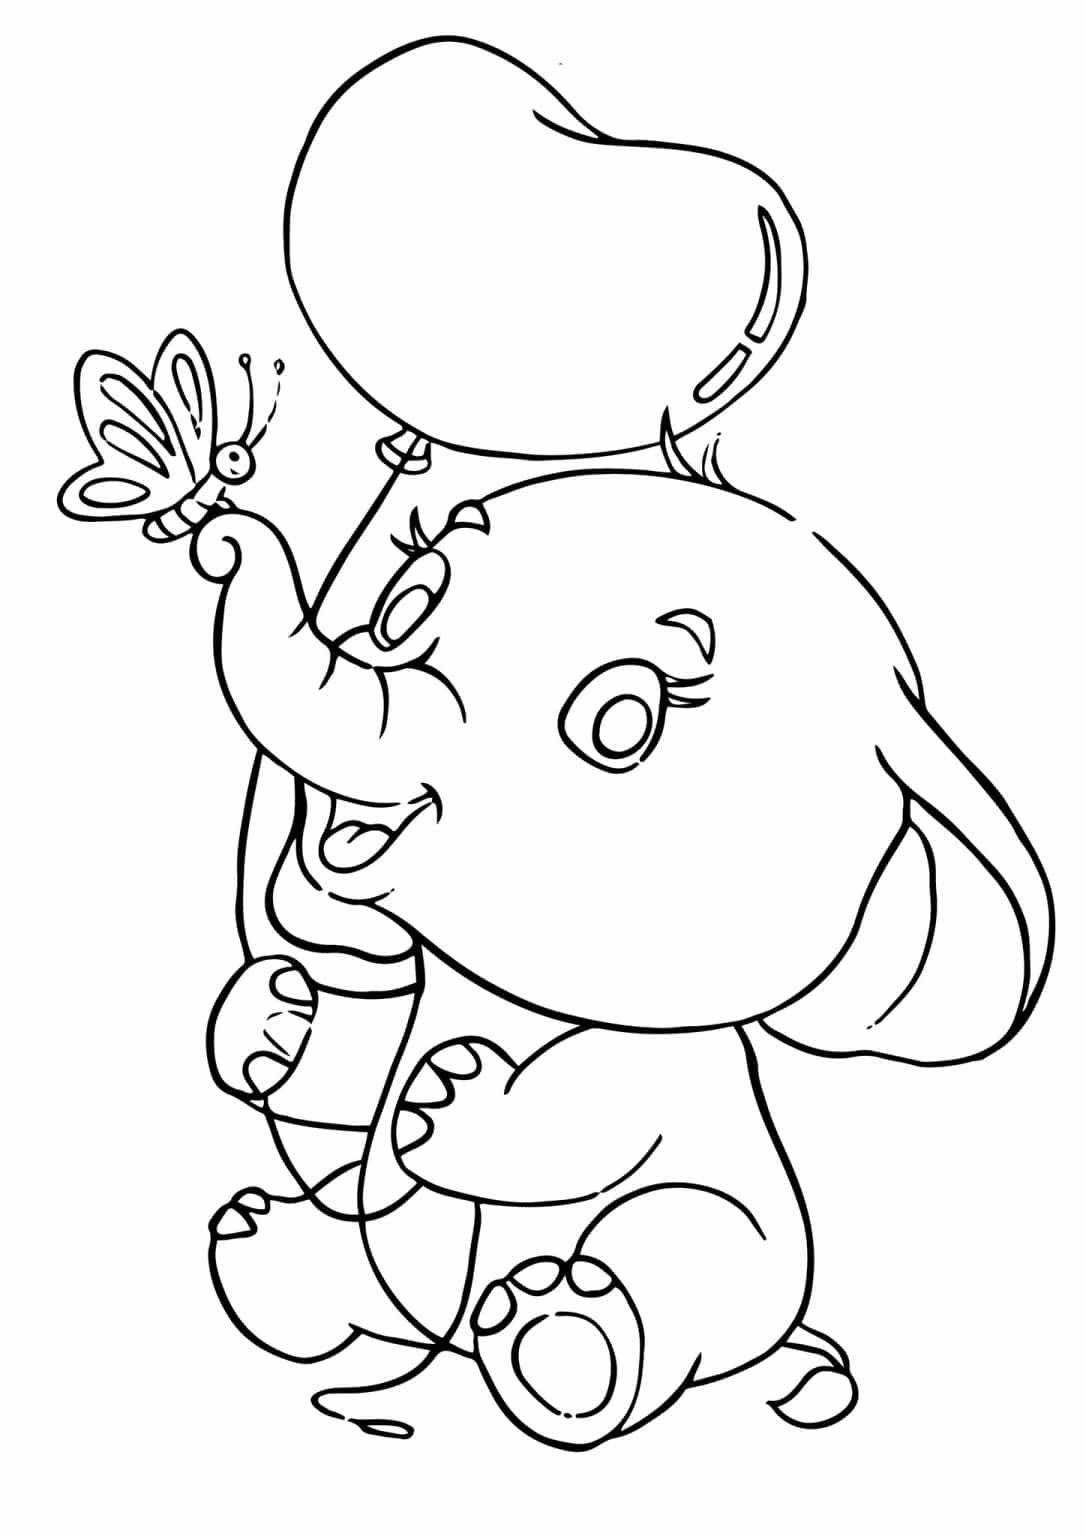 Free Easy To Print Elephant Coloring Pages In 2021 Elephant Coloring Page Coloring Pages Baby Elephant Drawing